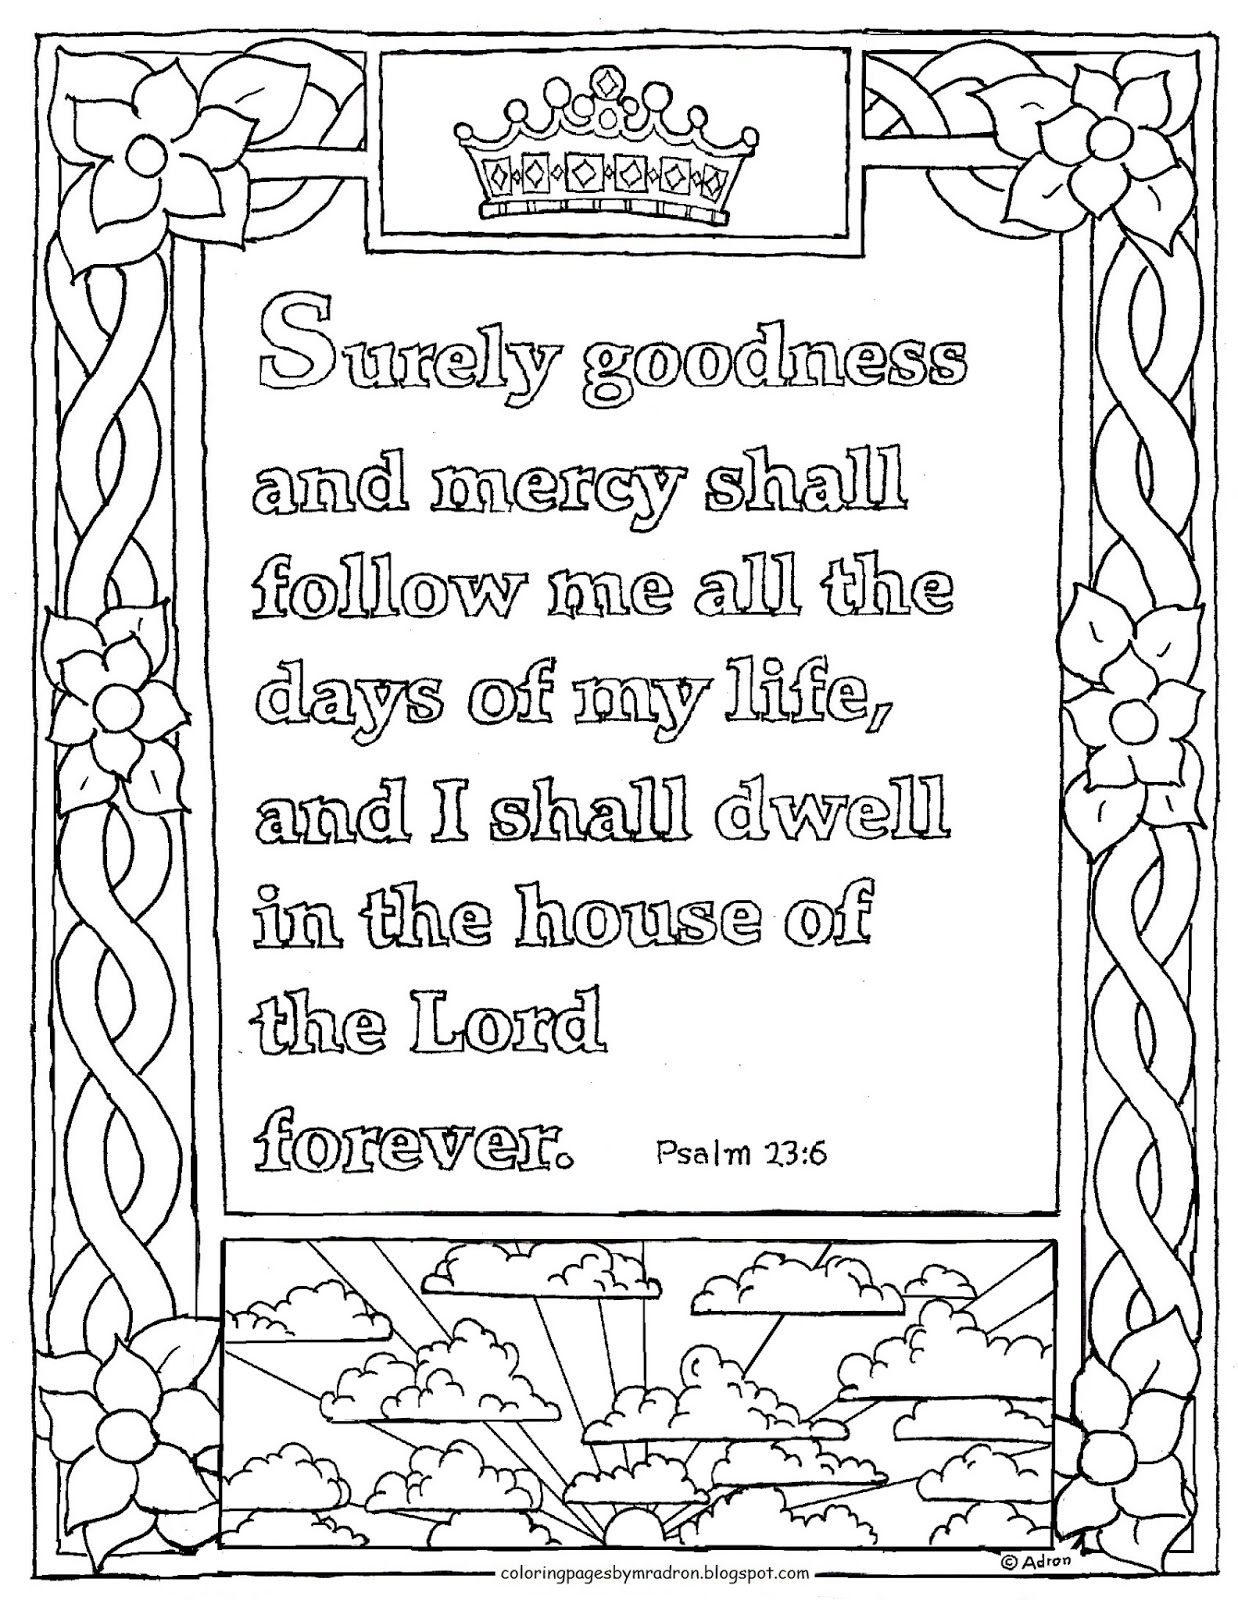 Printable Psalm 23 6 Coloring Page Goodness And Mercy Will Follow